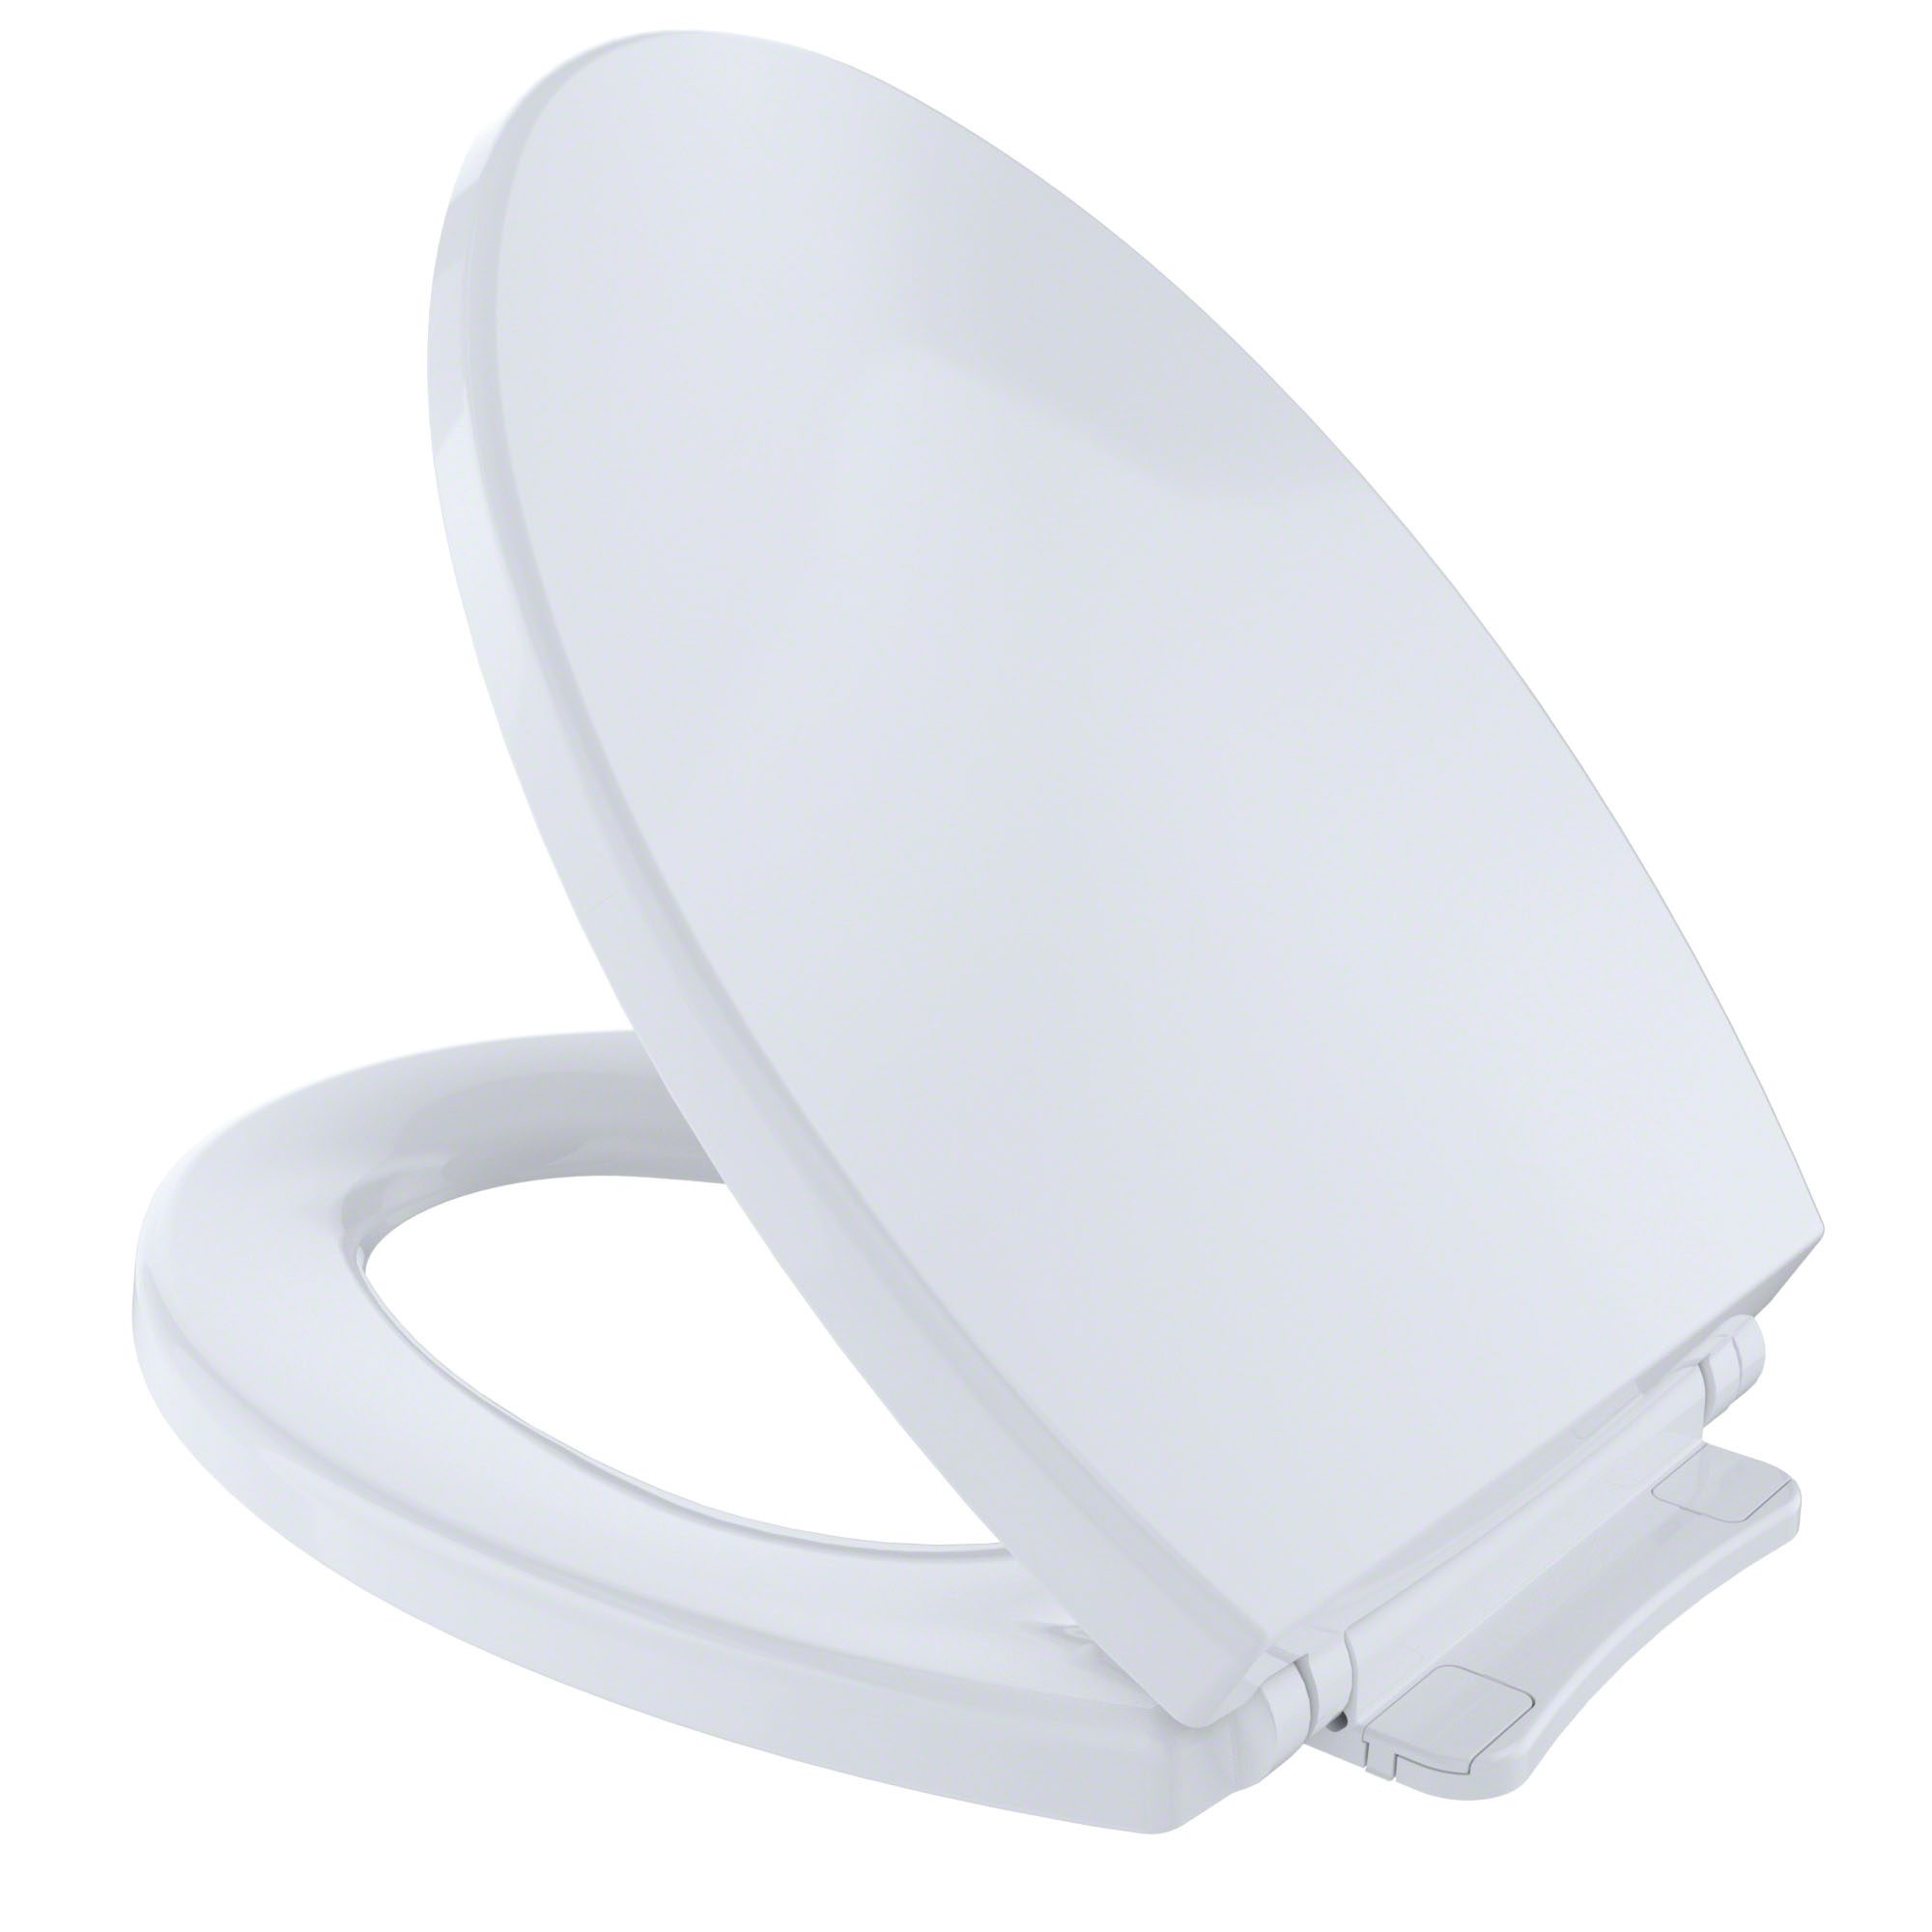 Toto® SS114#01 Toilet Seat With Cover, Elongated Bowl, Closed Front, Polypropylene, Cotton White, SoftClose® Hinge, Import